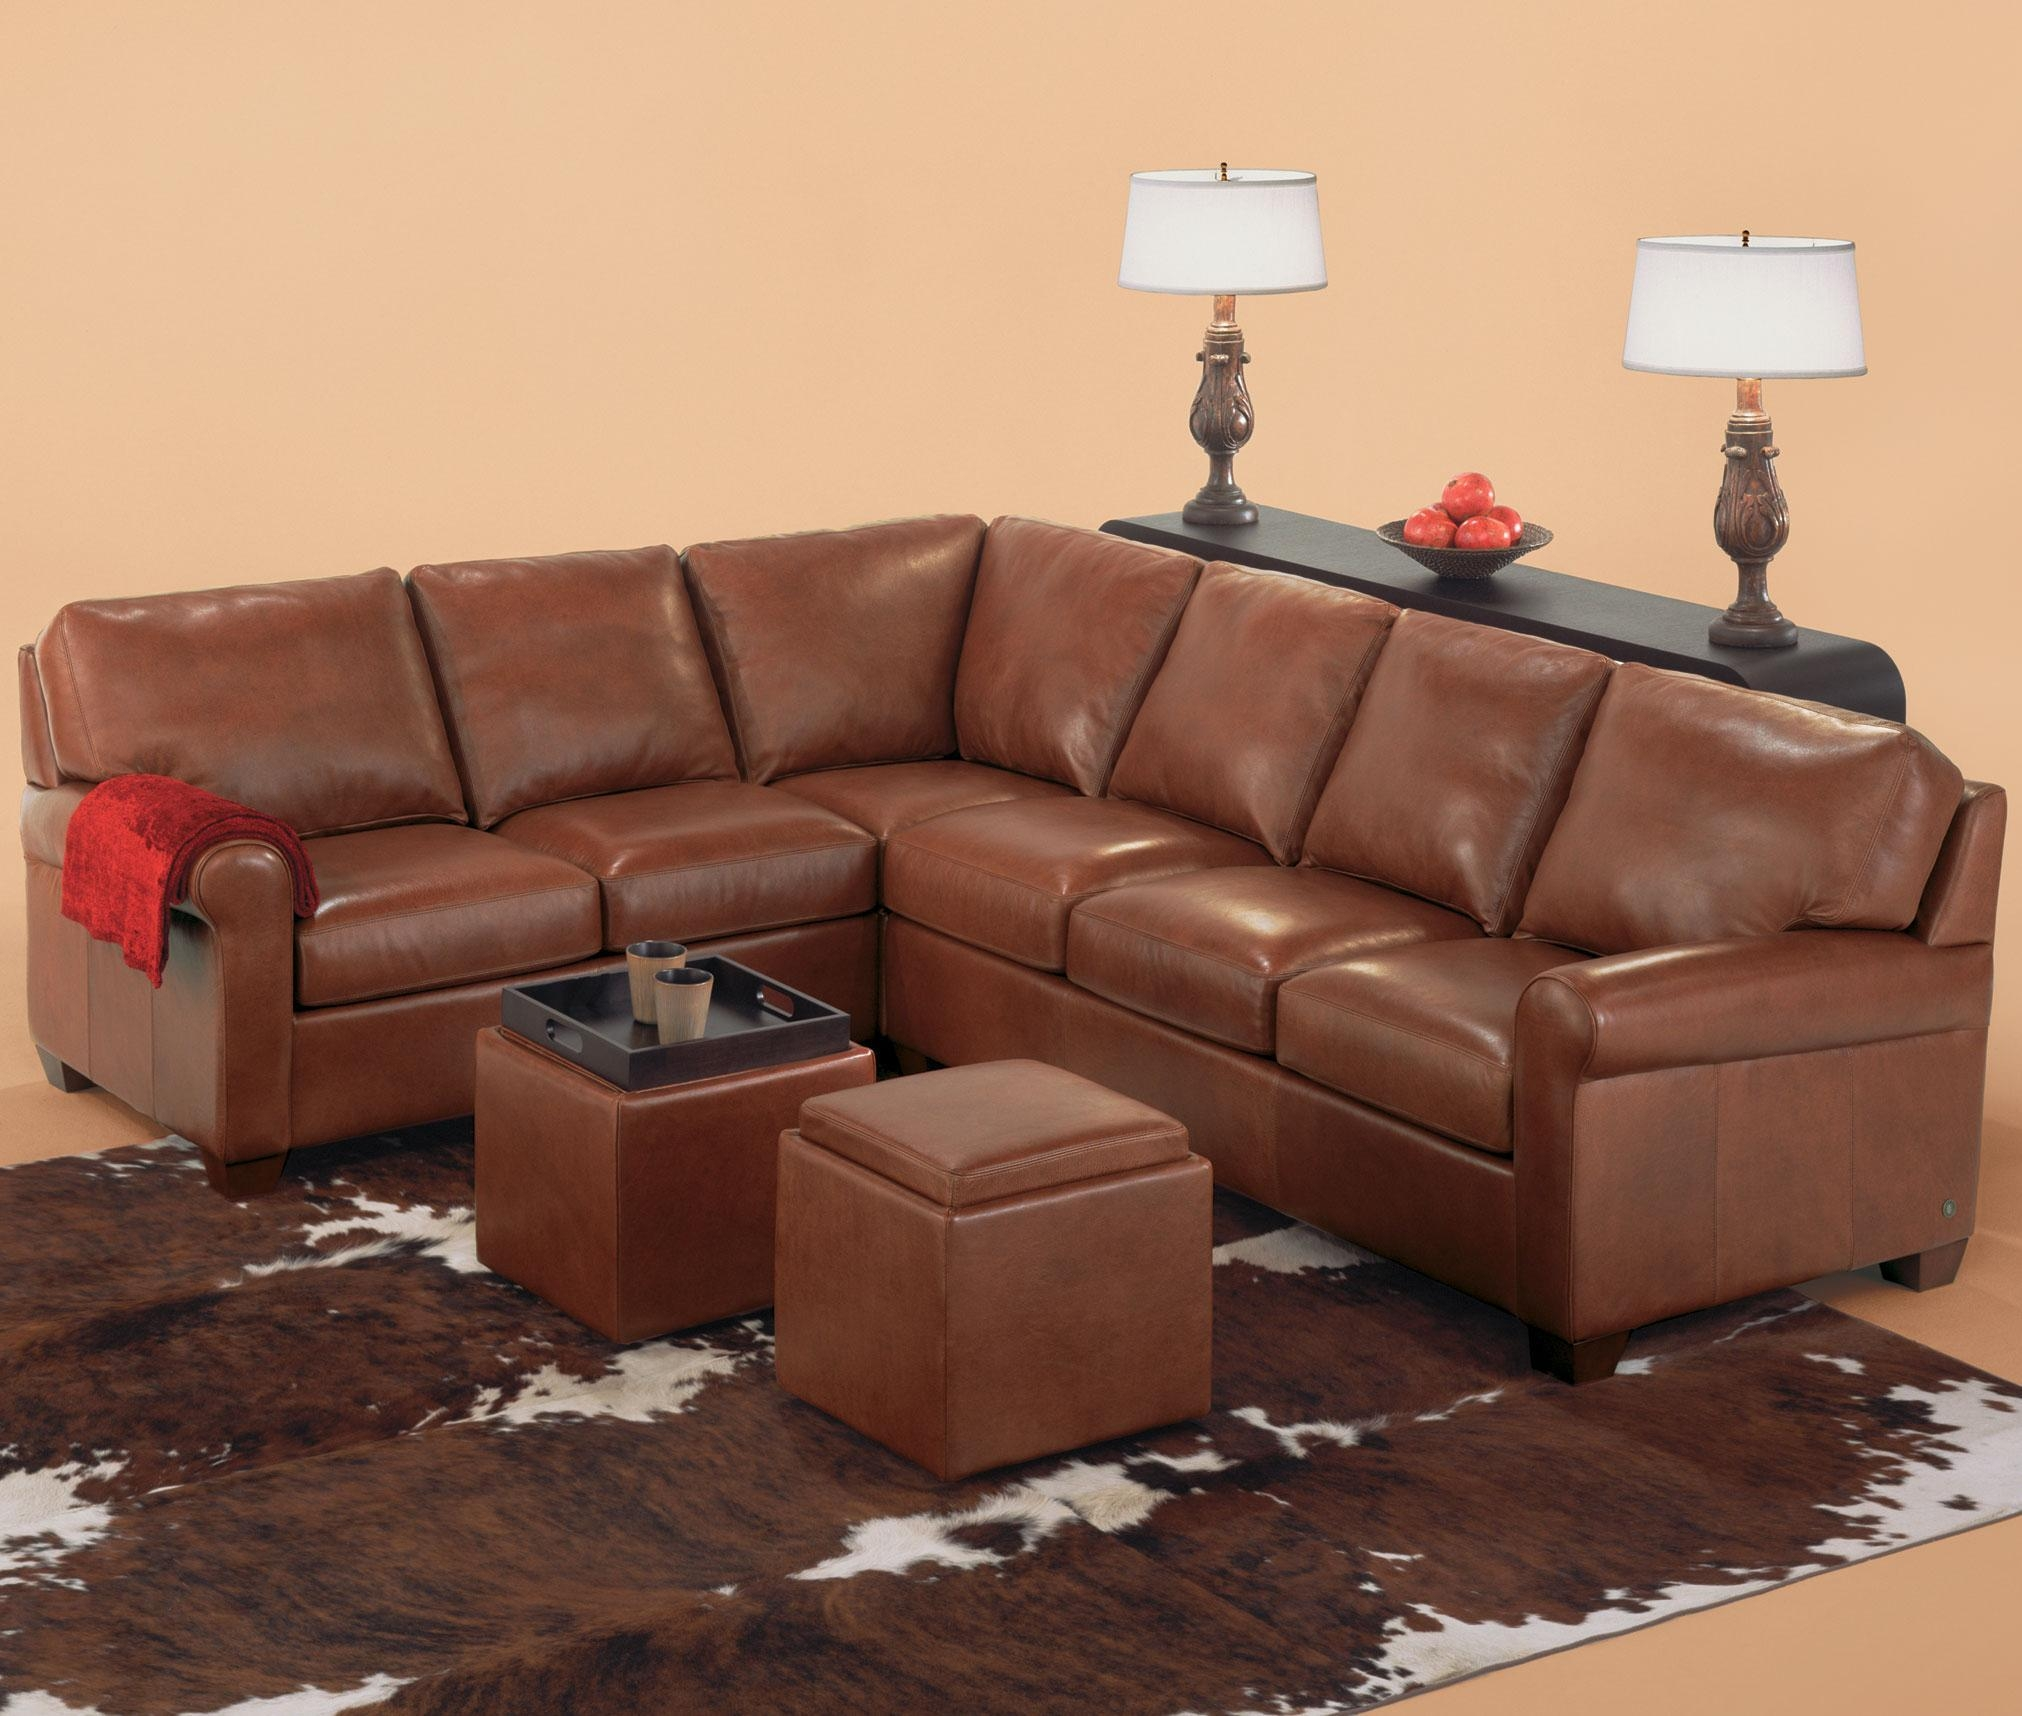 American Leather Savoy Contemporary 3 Piece Sectiona – Saugerties For Savoy Leather Sofas (Image 2 of 20)